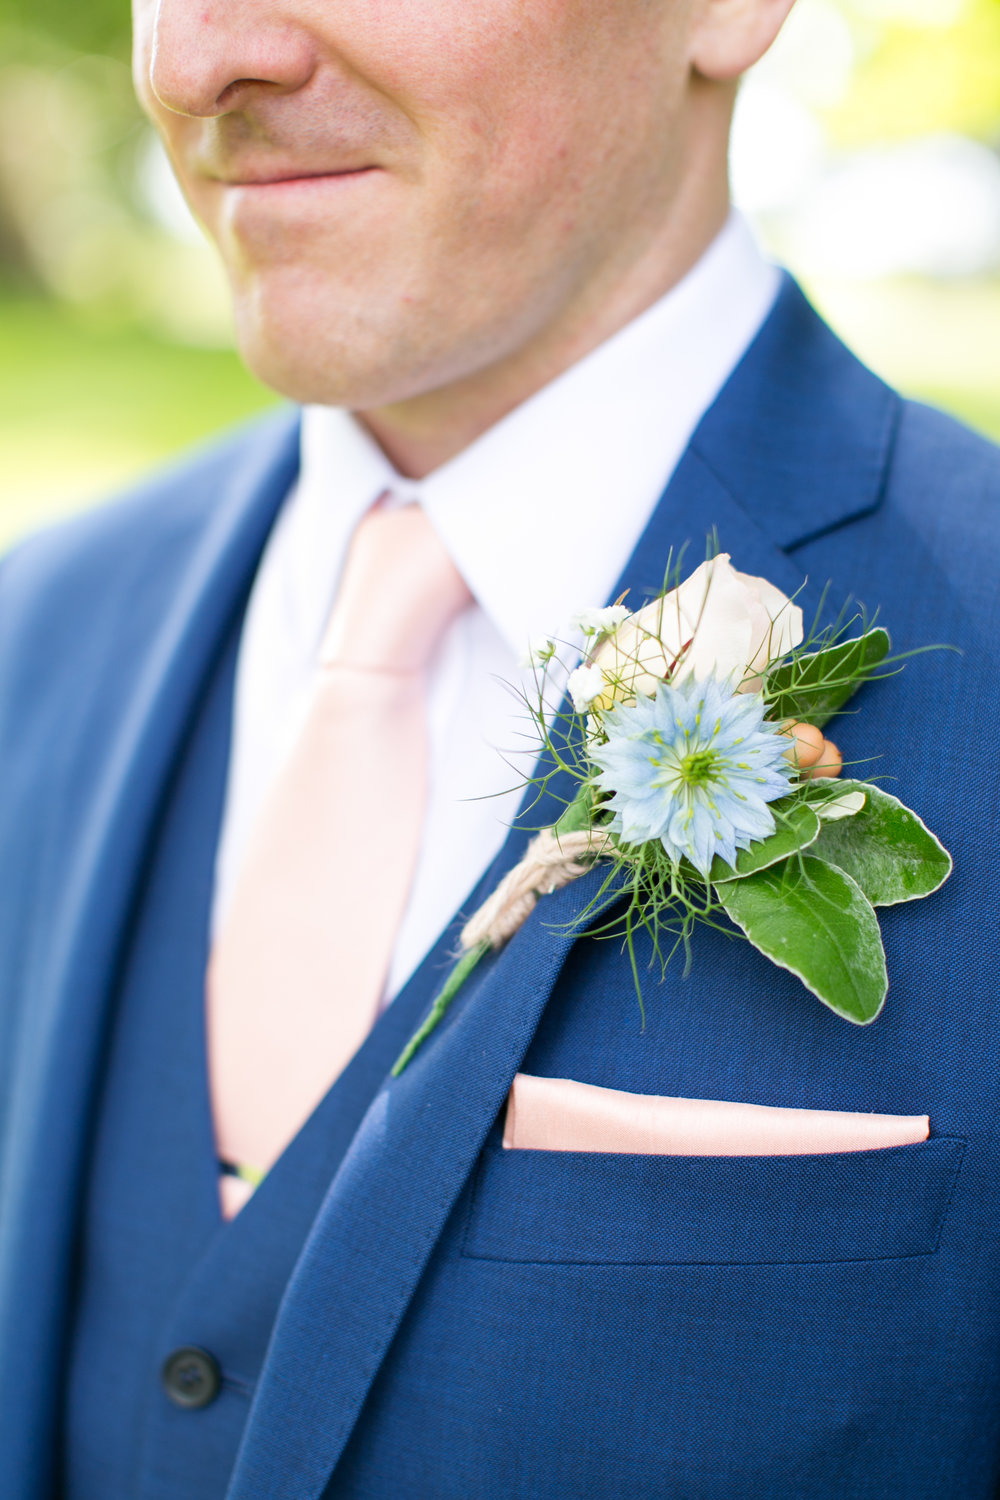 Buttonholes - one of my favourite details in any wedding is the making of these little works of art. Honestly, I could happily make these all day!